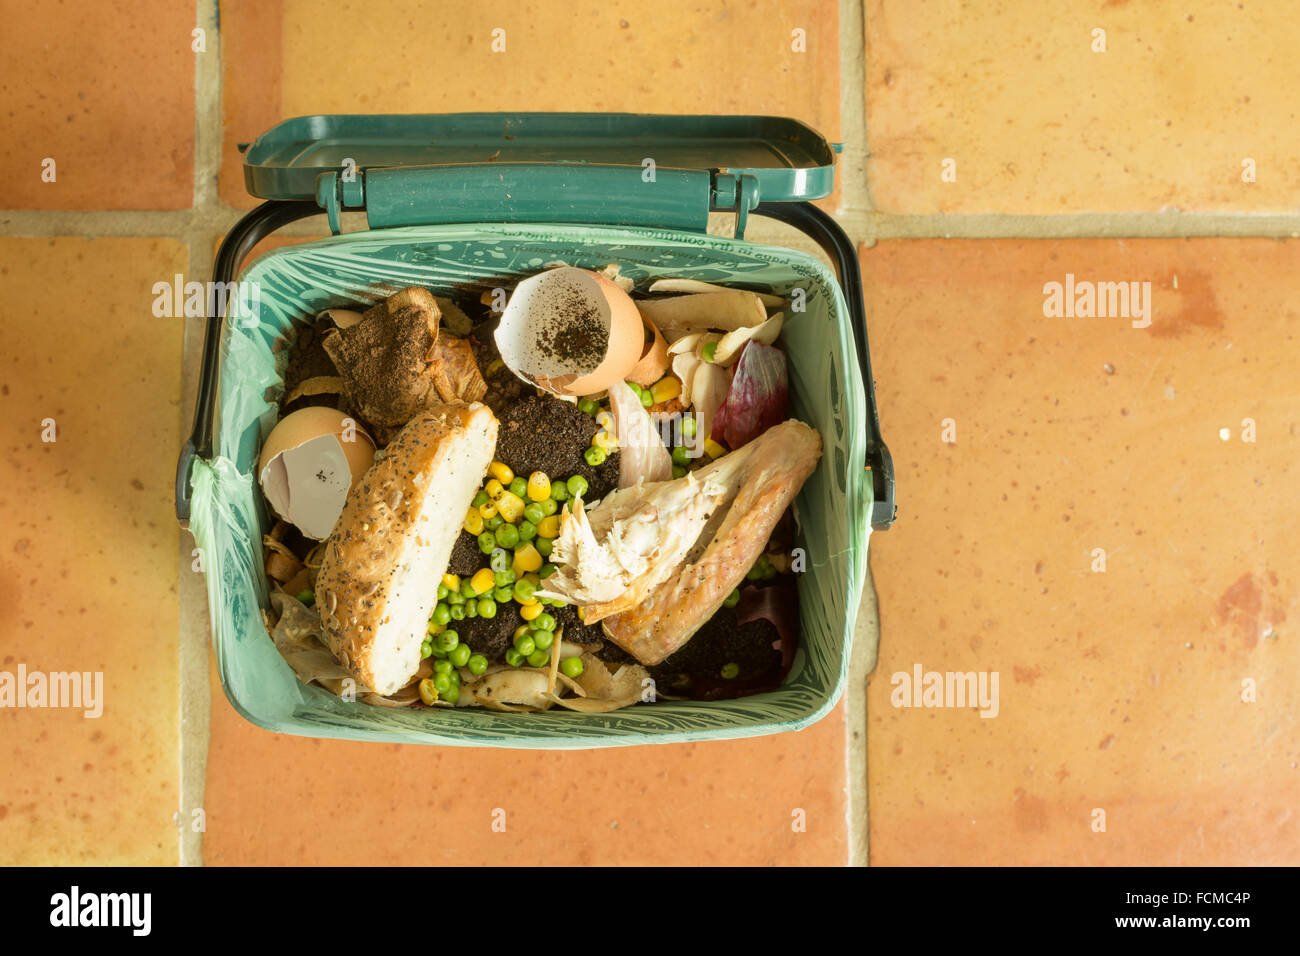 food waste - Indoor food recycling caddy full of kitchen waste including meat and bread - Stock Image